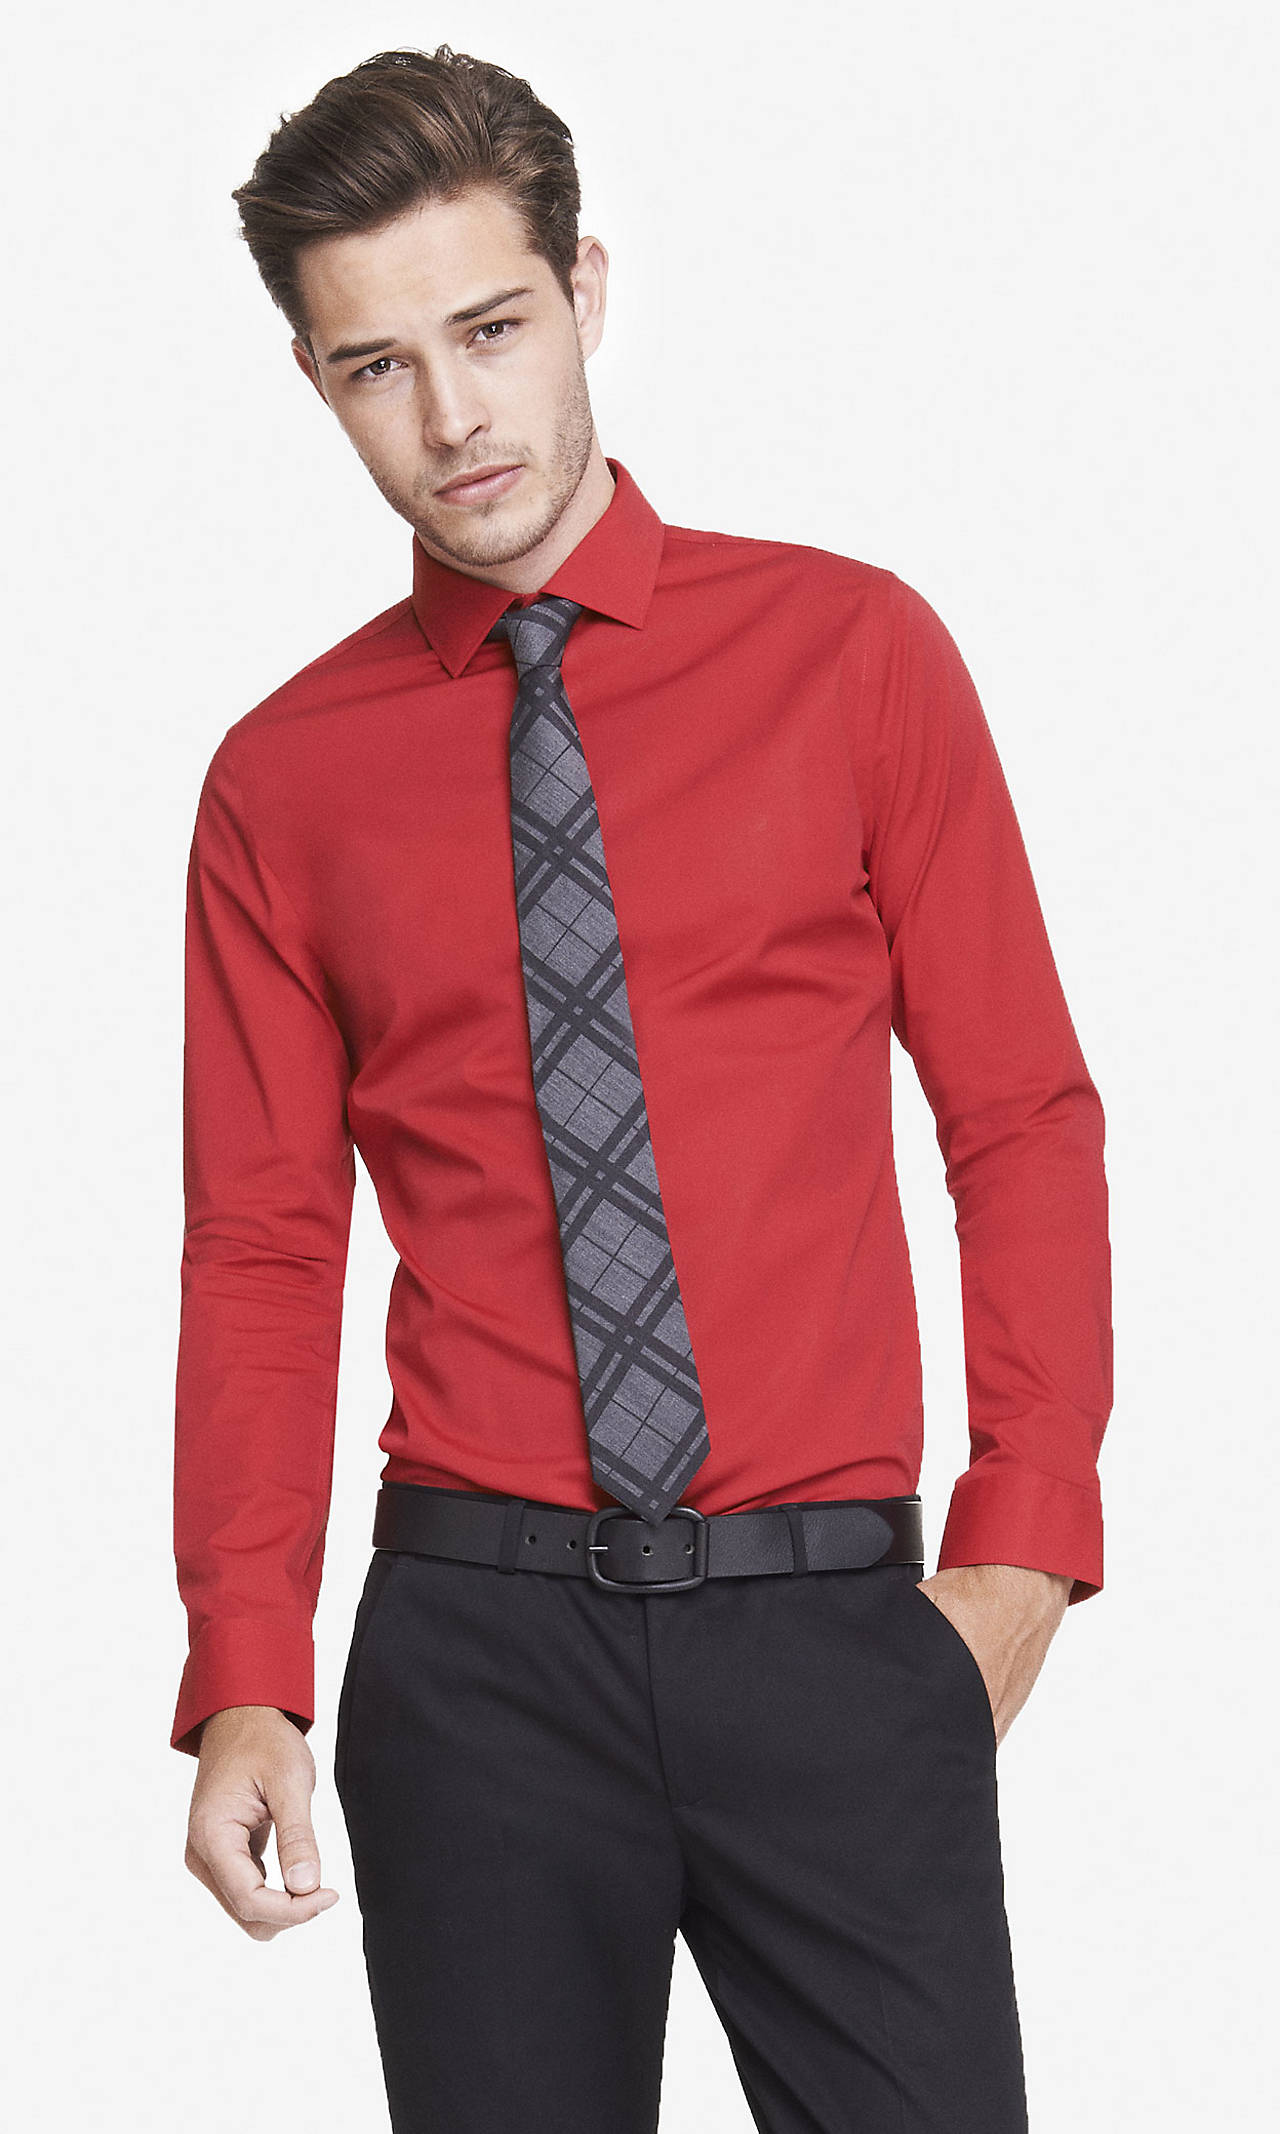 Shop Red, casual, dress and more shirts for men & get free shipping w/minimum purchase! Macy's Presents: The Edit - A curated mix of fashion and inspiration Check It Out Free Shipping with $99 purchase + Free Store Pickup.